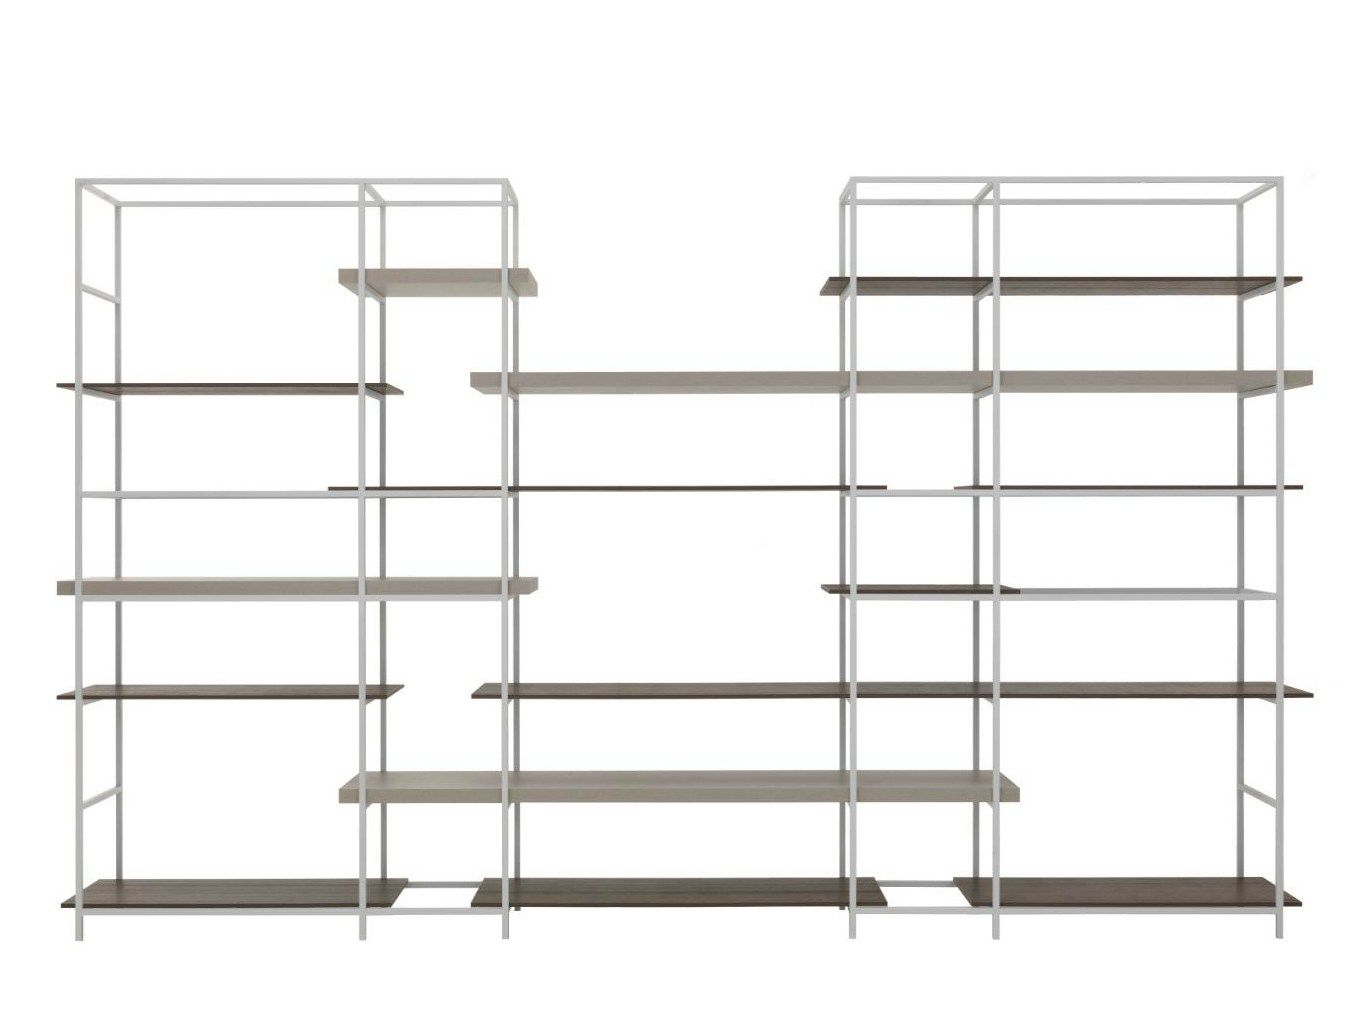 sectional metal shelving plain is a lightweight squared metal structure painted in white. Black Bedroom Furniture Sets. Home Design Ideas